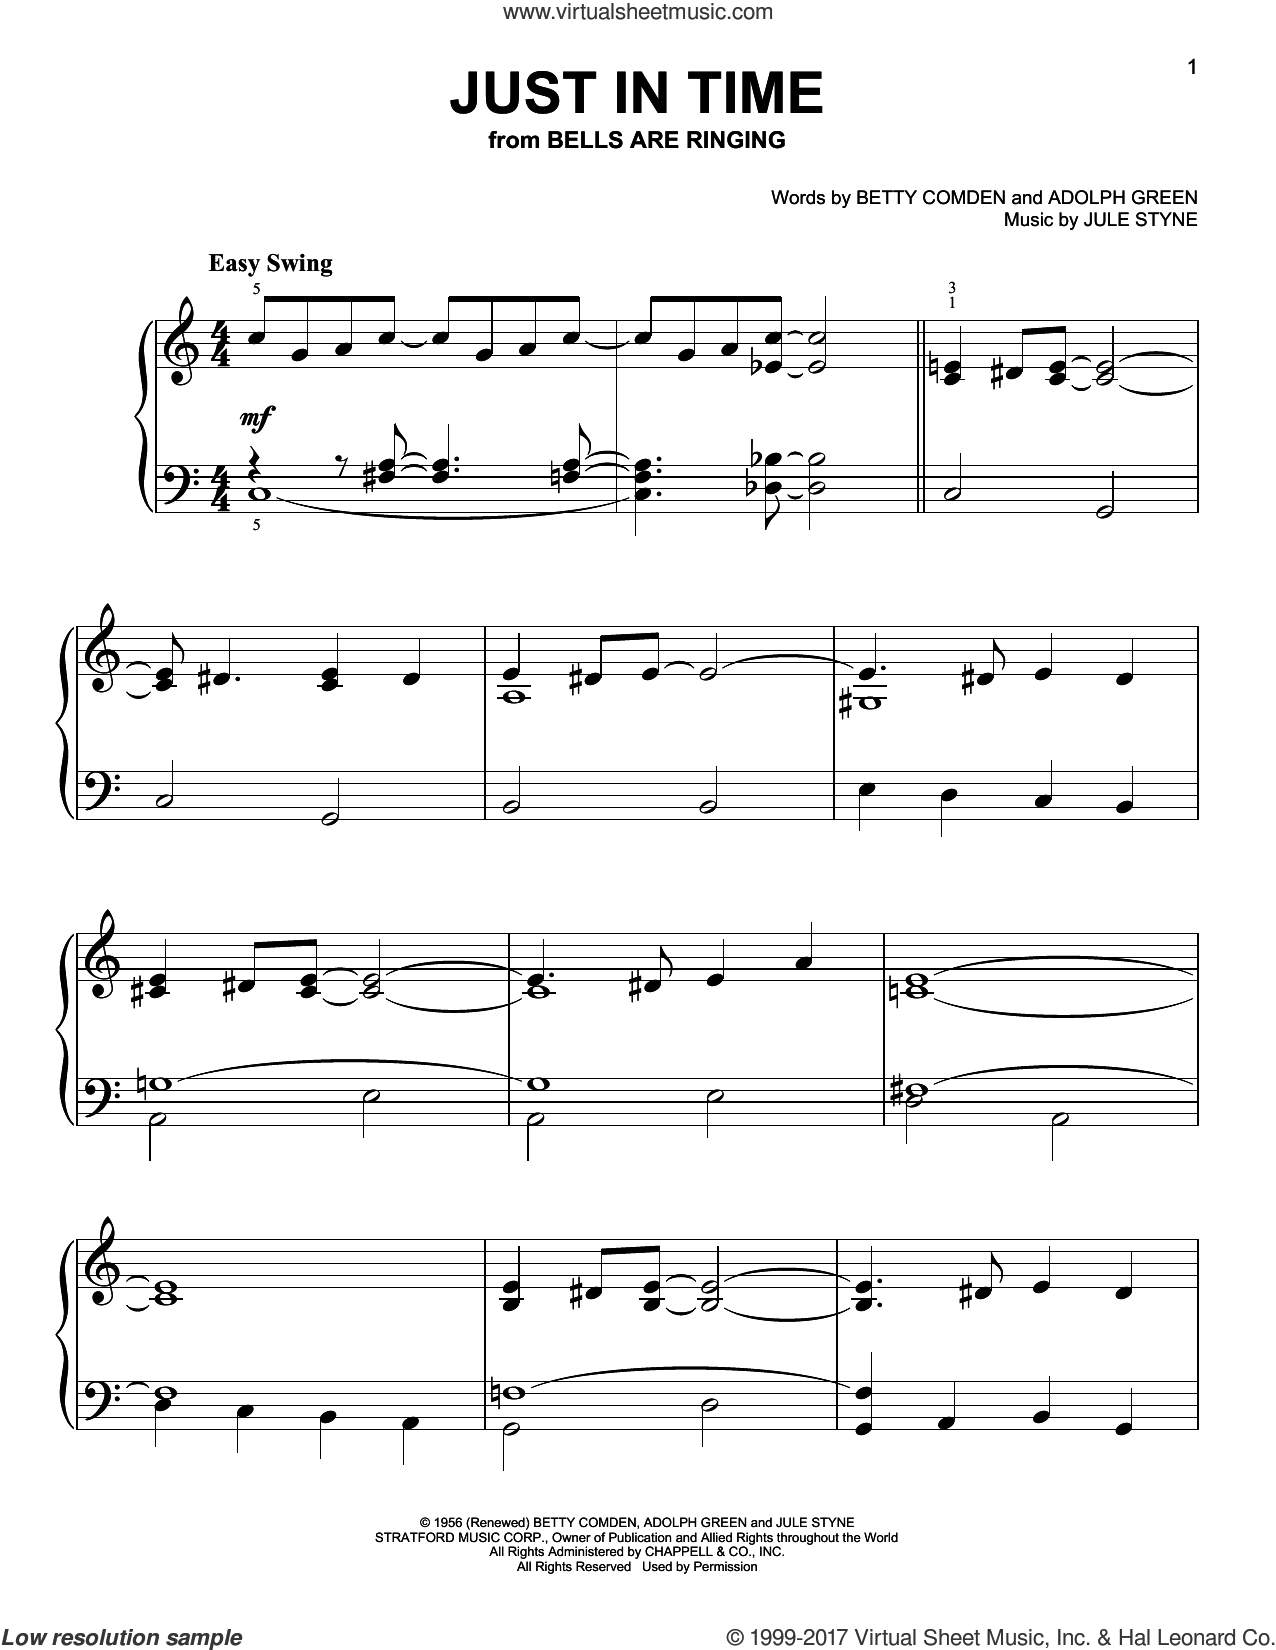 Just In Time, (easy) sheet music for piano solo by Jule Styne, Adolph Green and Betty Comden, wedding score, easy skill level